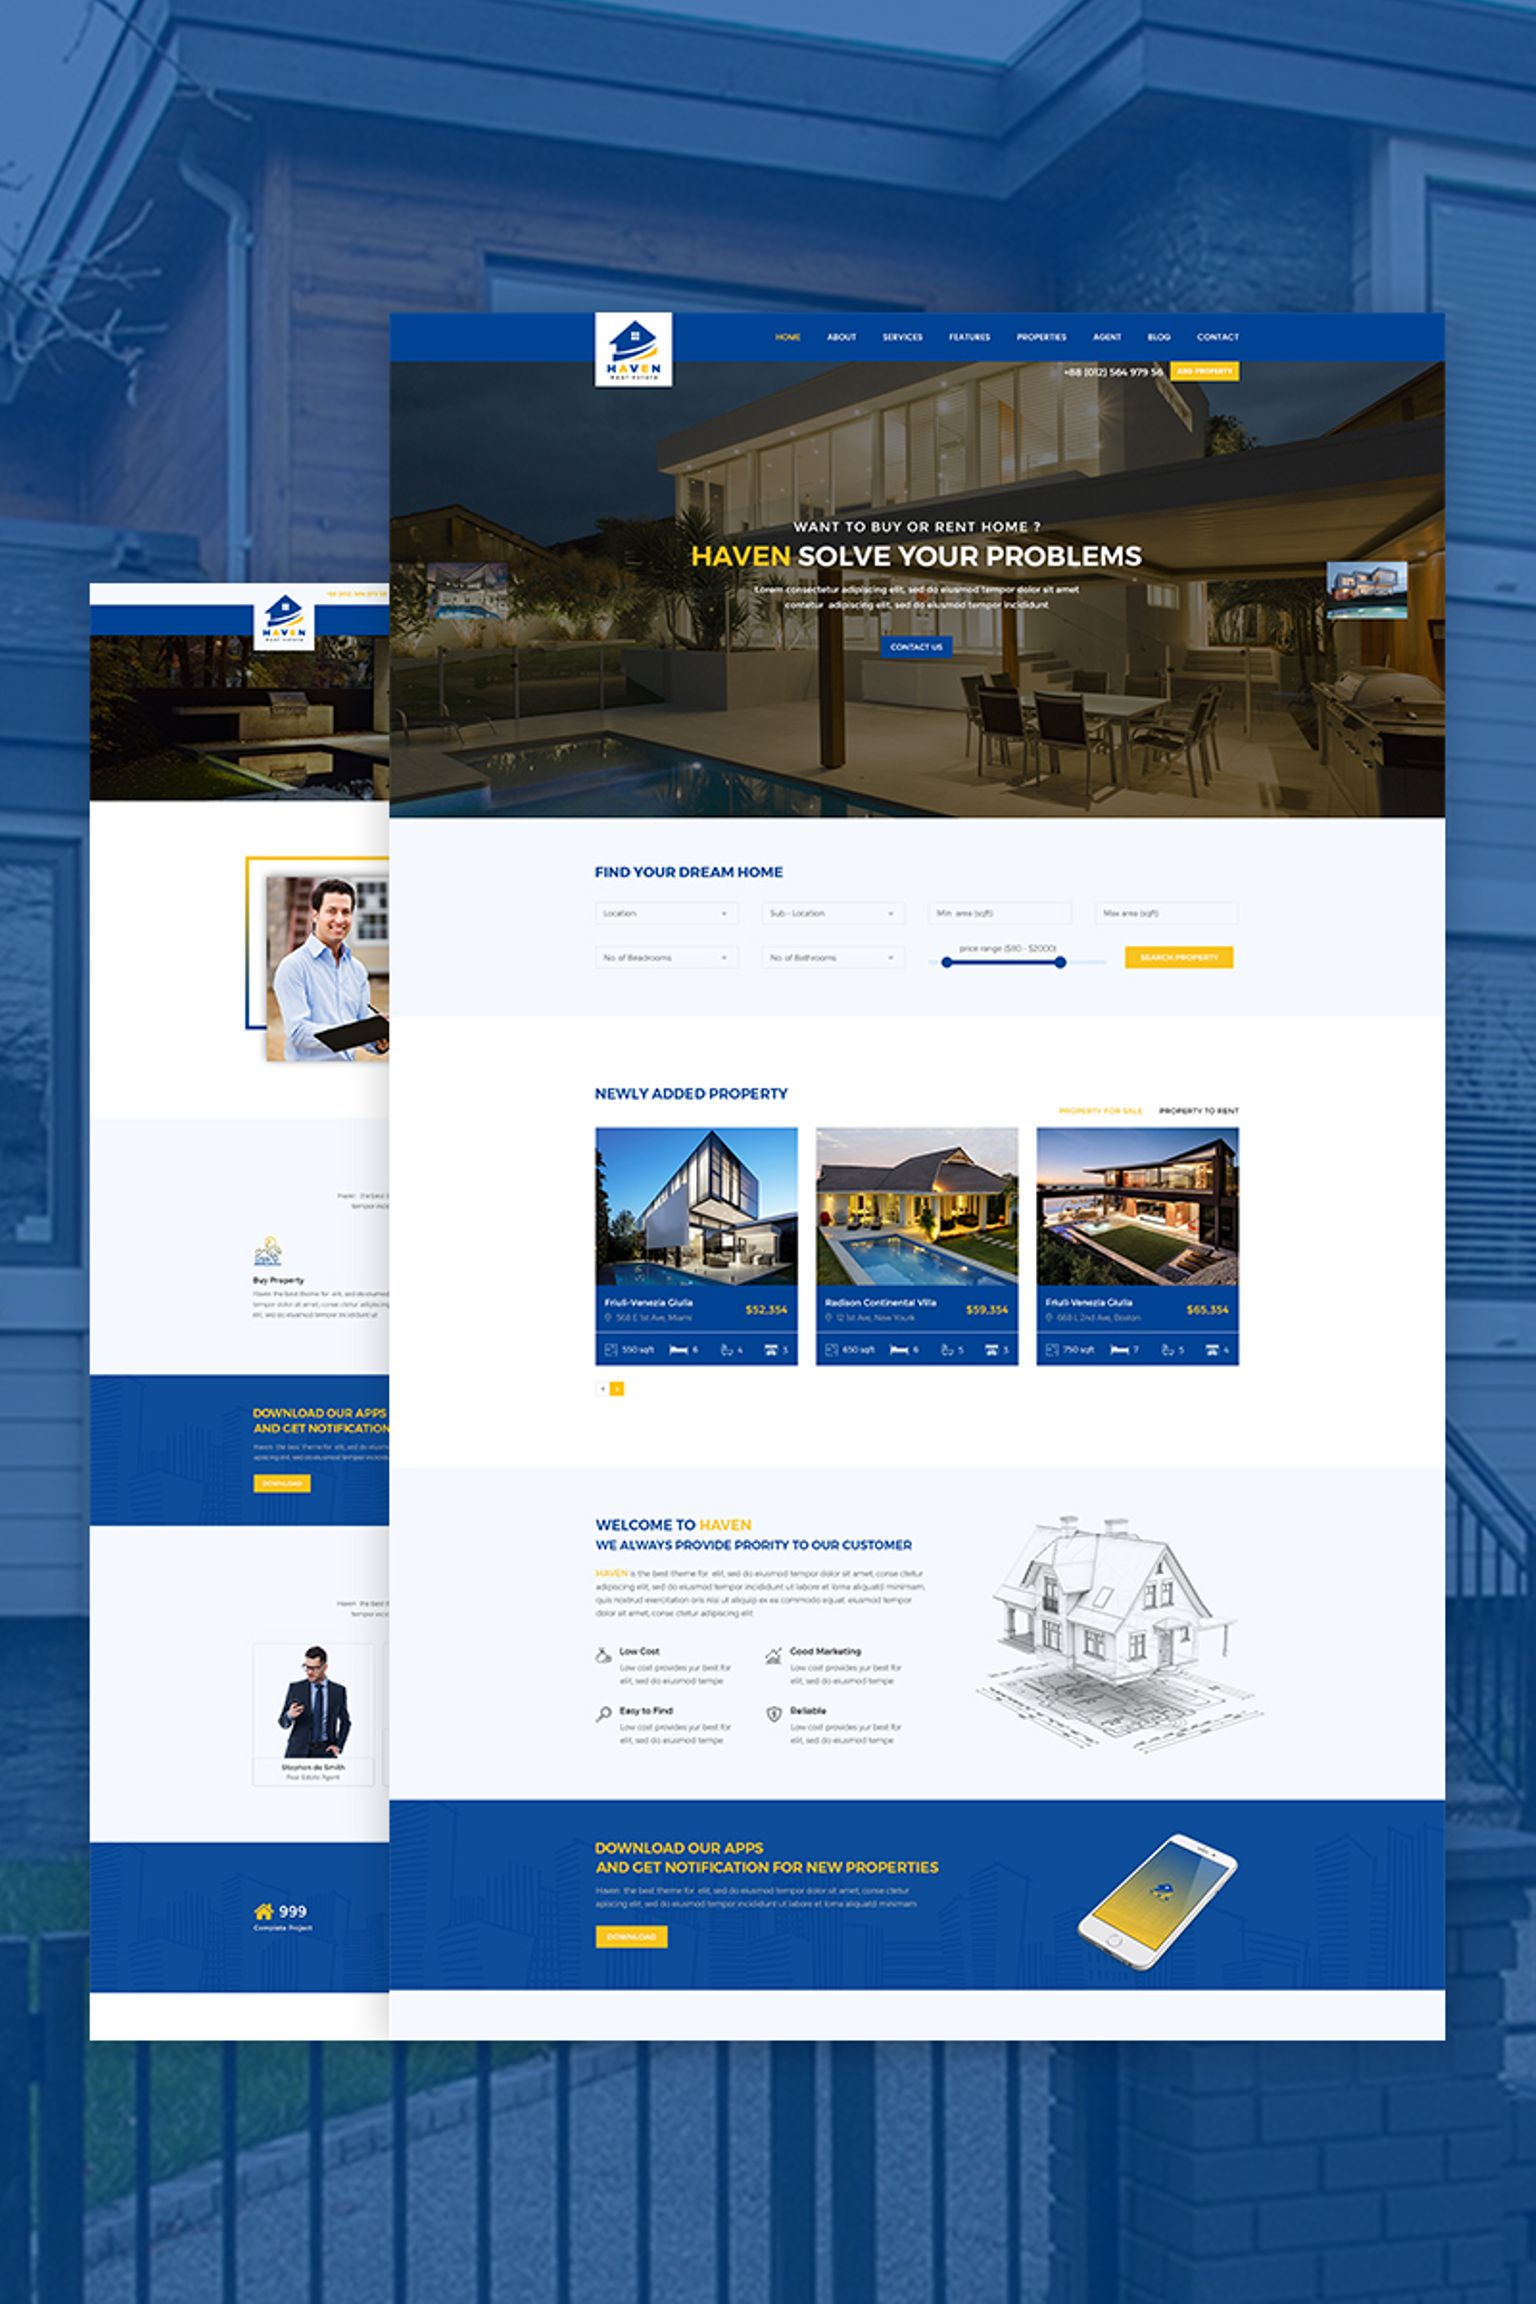 Website Design Template 67385 - business developer directory google maps listing property real estate agent realtor rental